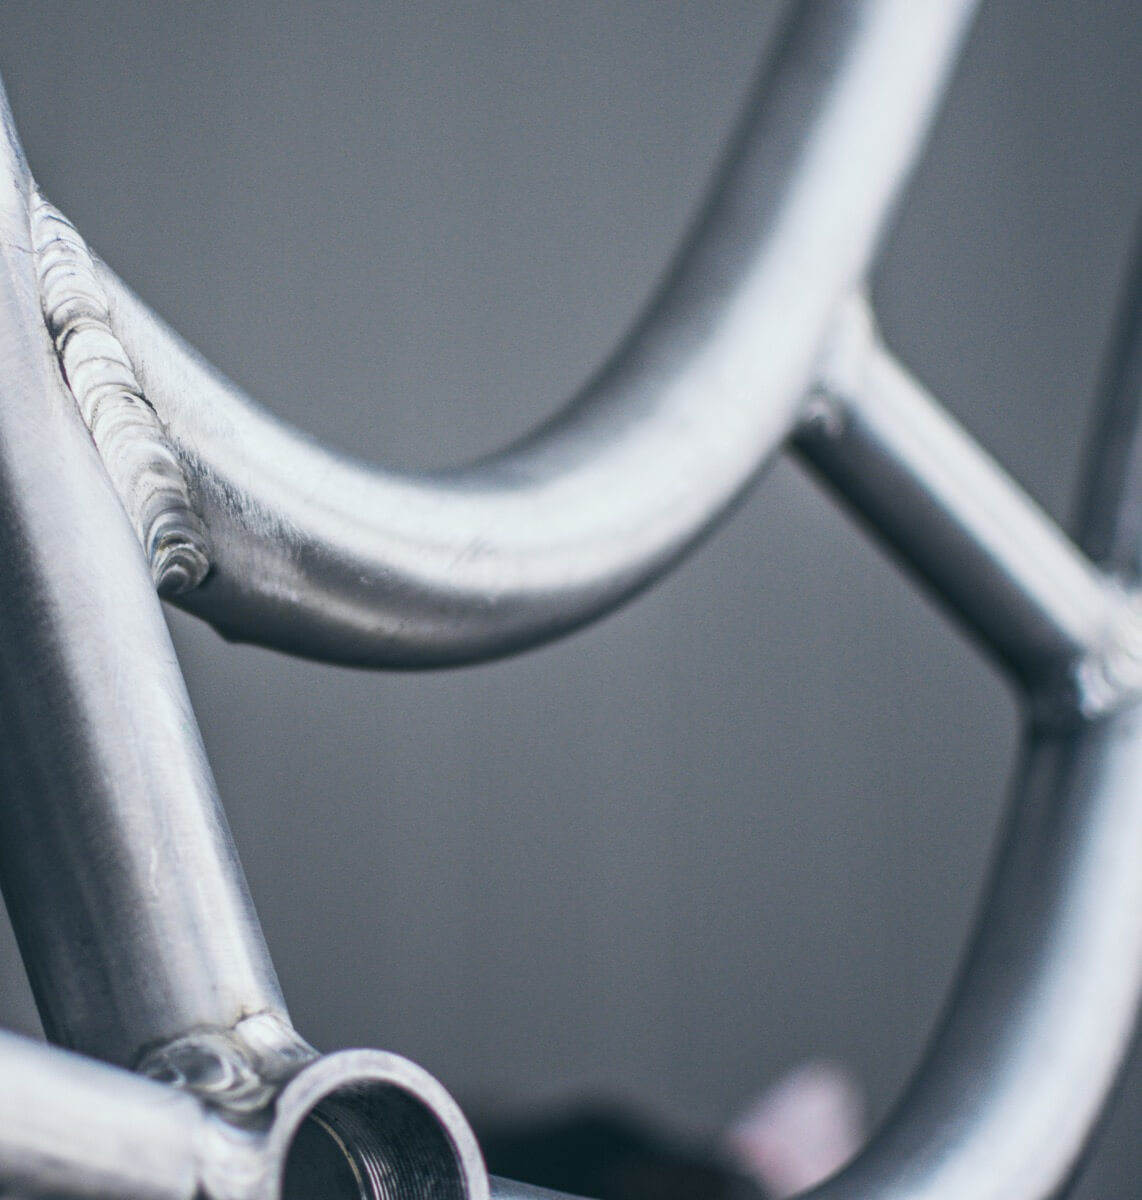 Timeless Vintage Colors for Speed Bicycles